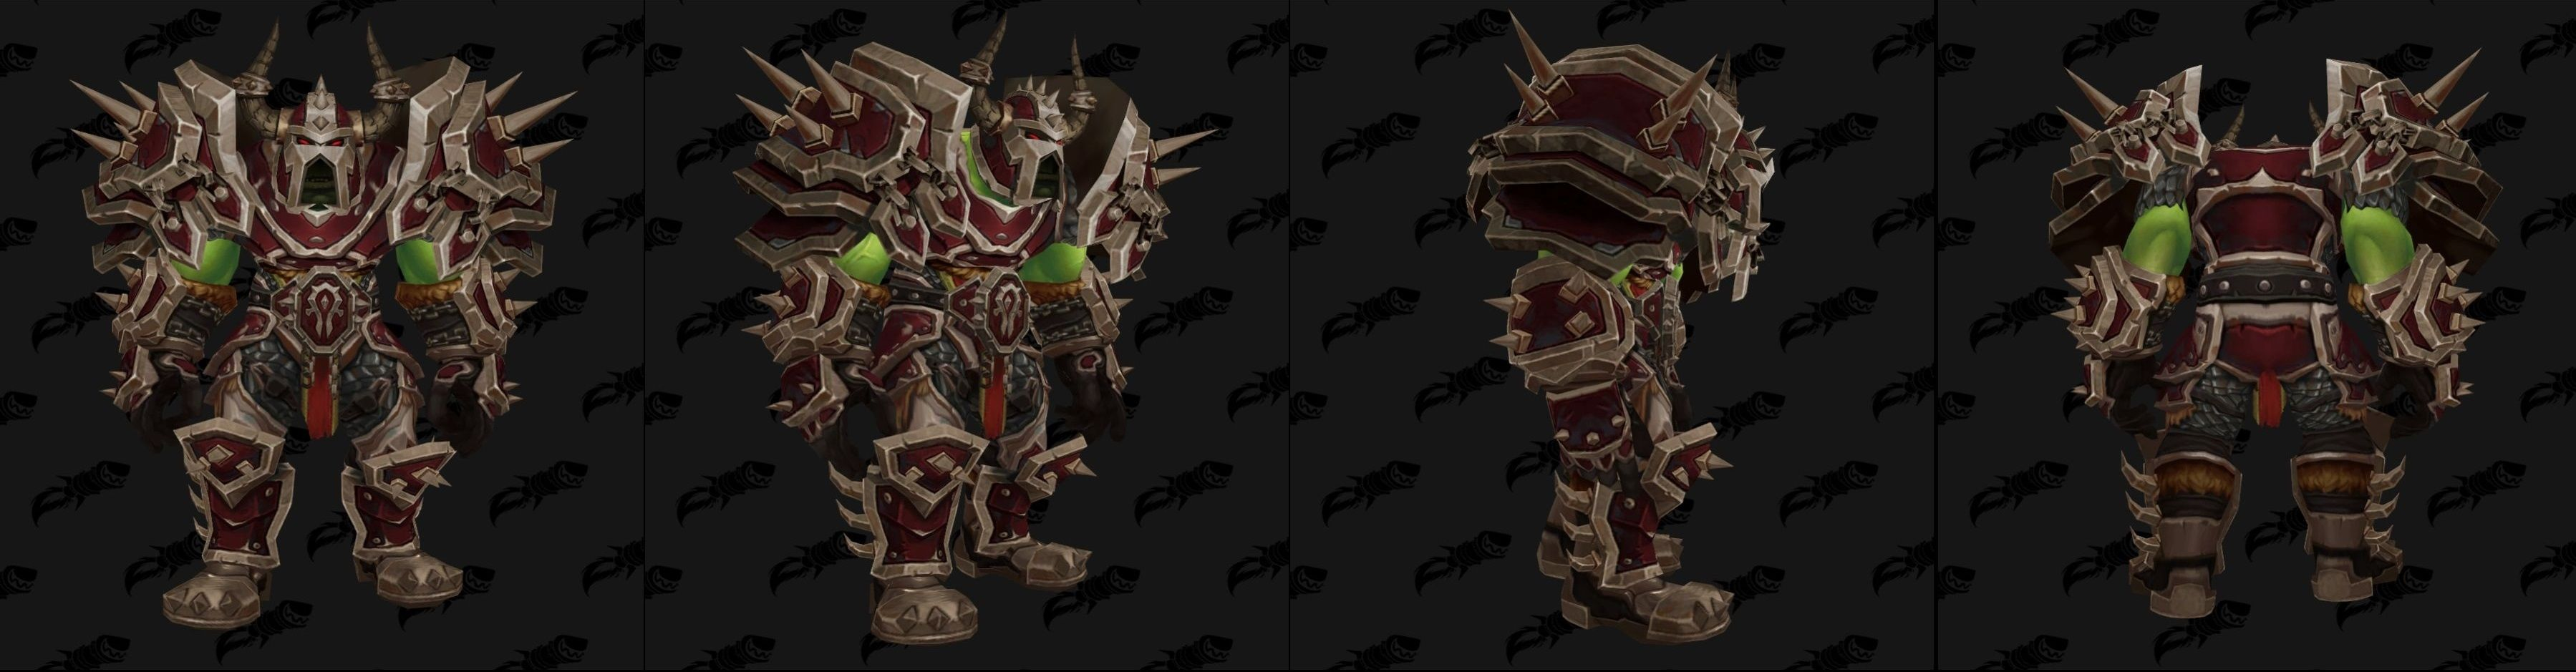 WoW Warfront Armor Orc Set 3